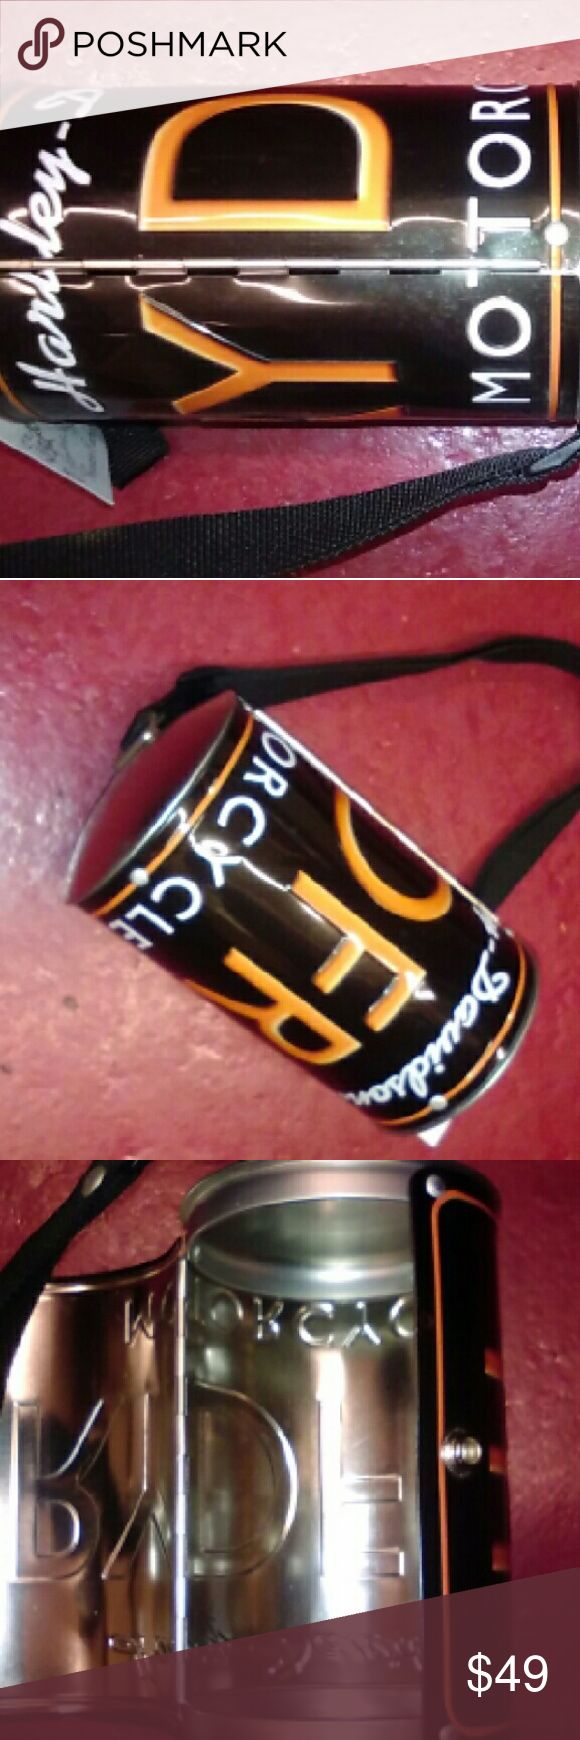 Harley Davidson License Plate Crossbody Purse NWOT NWOT Harley Davidson license plate small crossbody purse. Great gift!  Will ship right away.  Check out my other designer items Bags Crossbody Bags